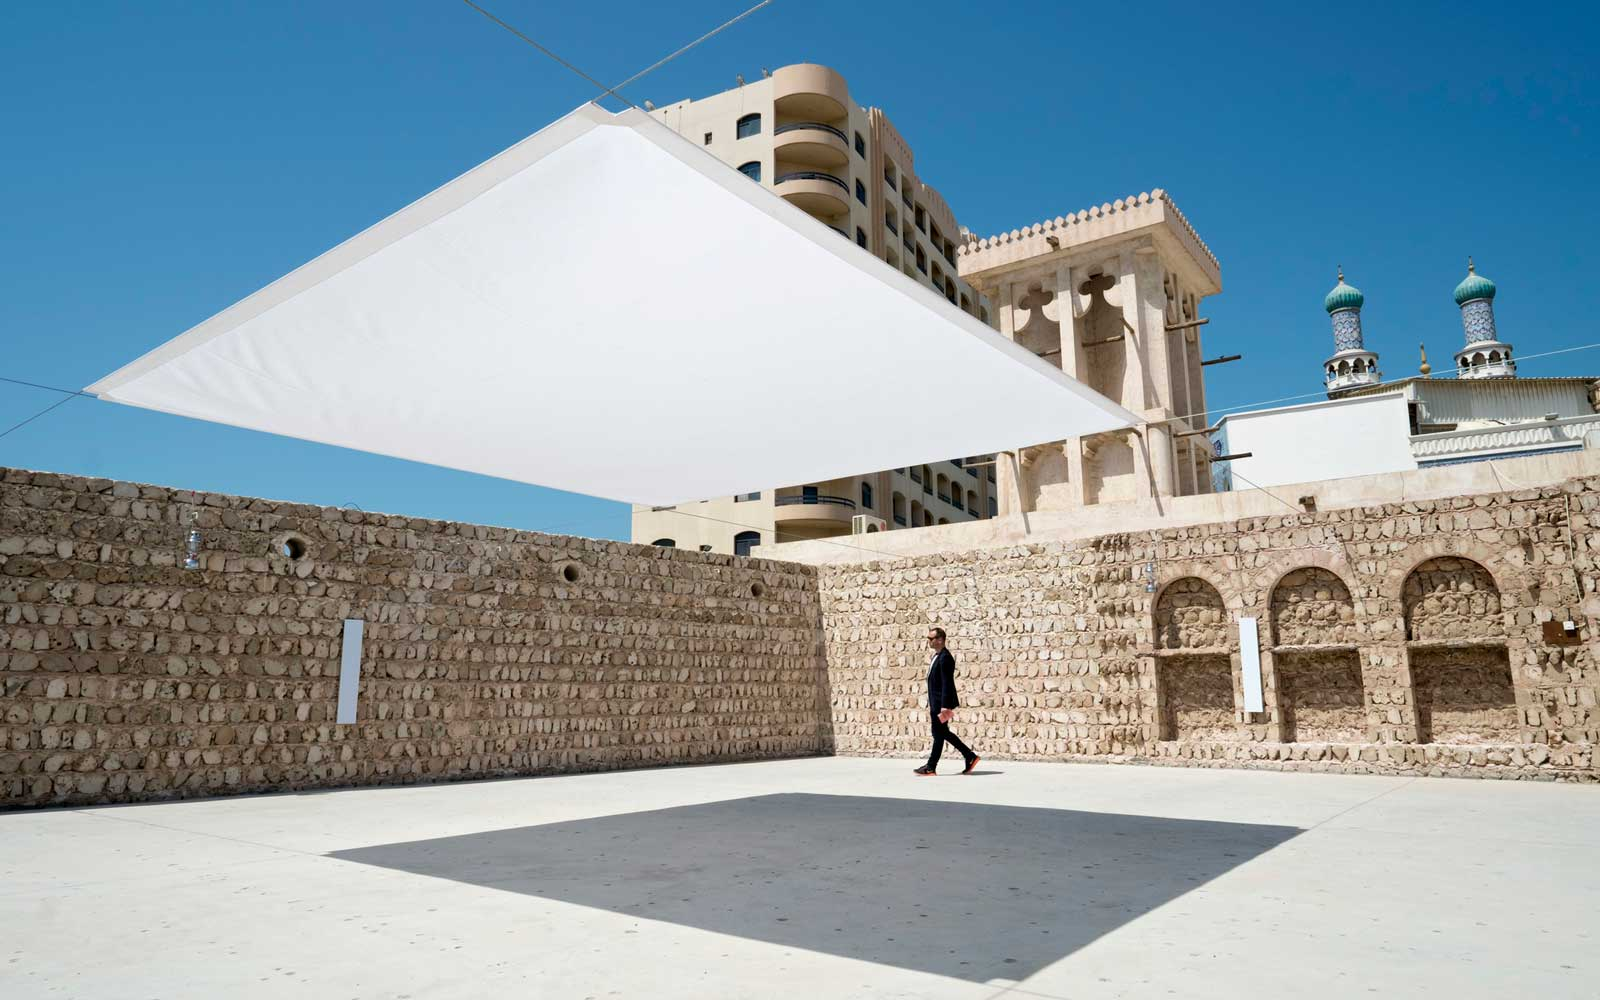 Could Sharjah Be the New Arts Capital of the Middle East?